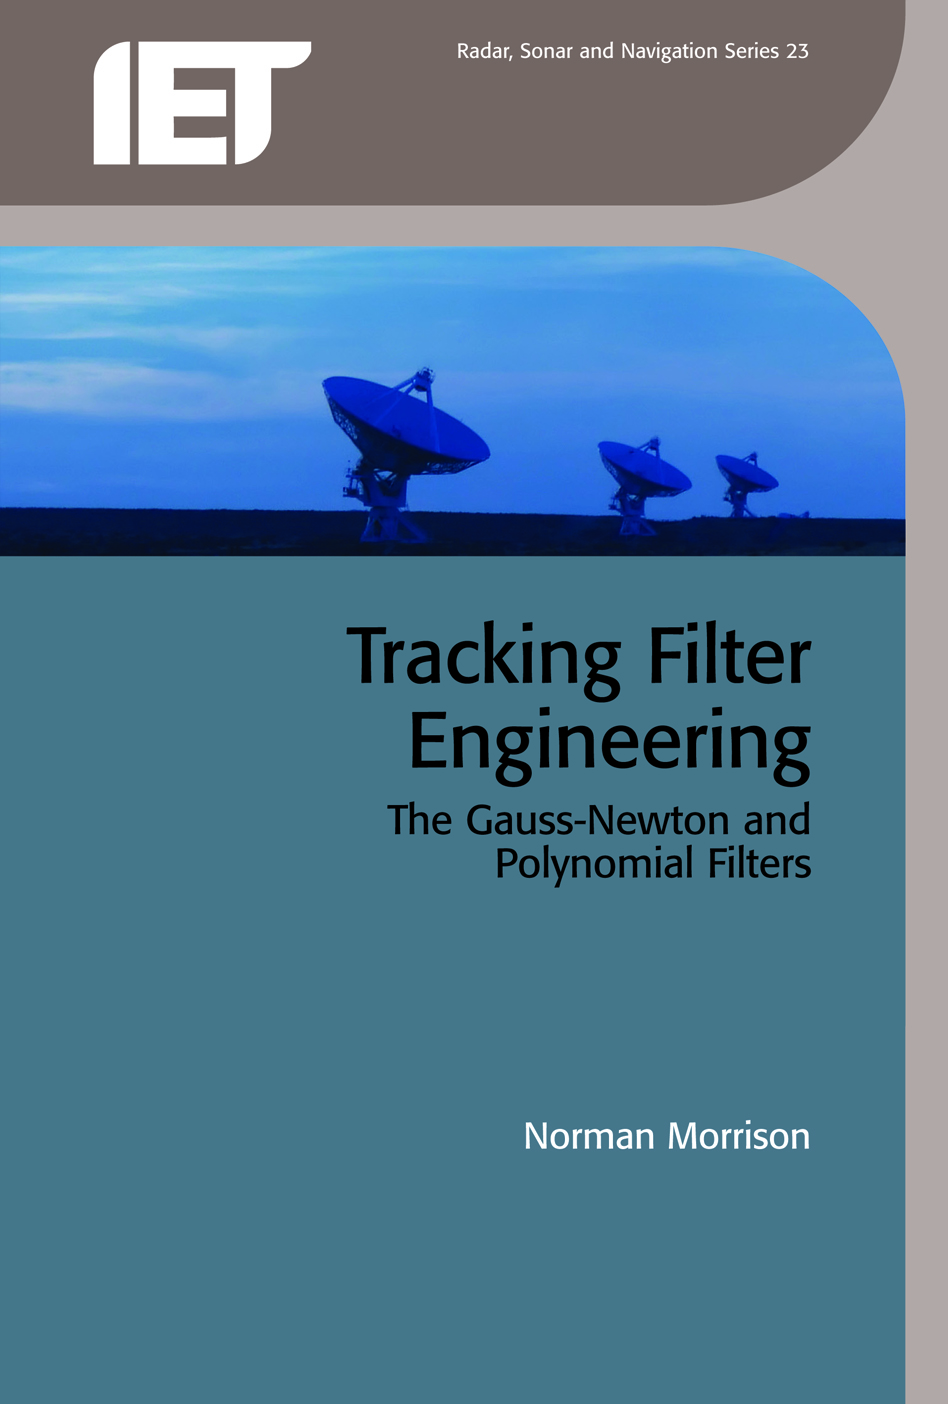 Tracking Filter Engineering, The Gauss-Newton and polynomial filters